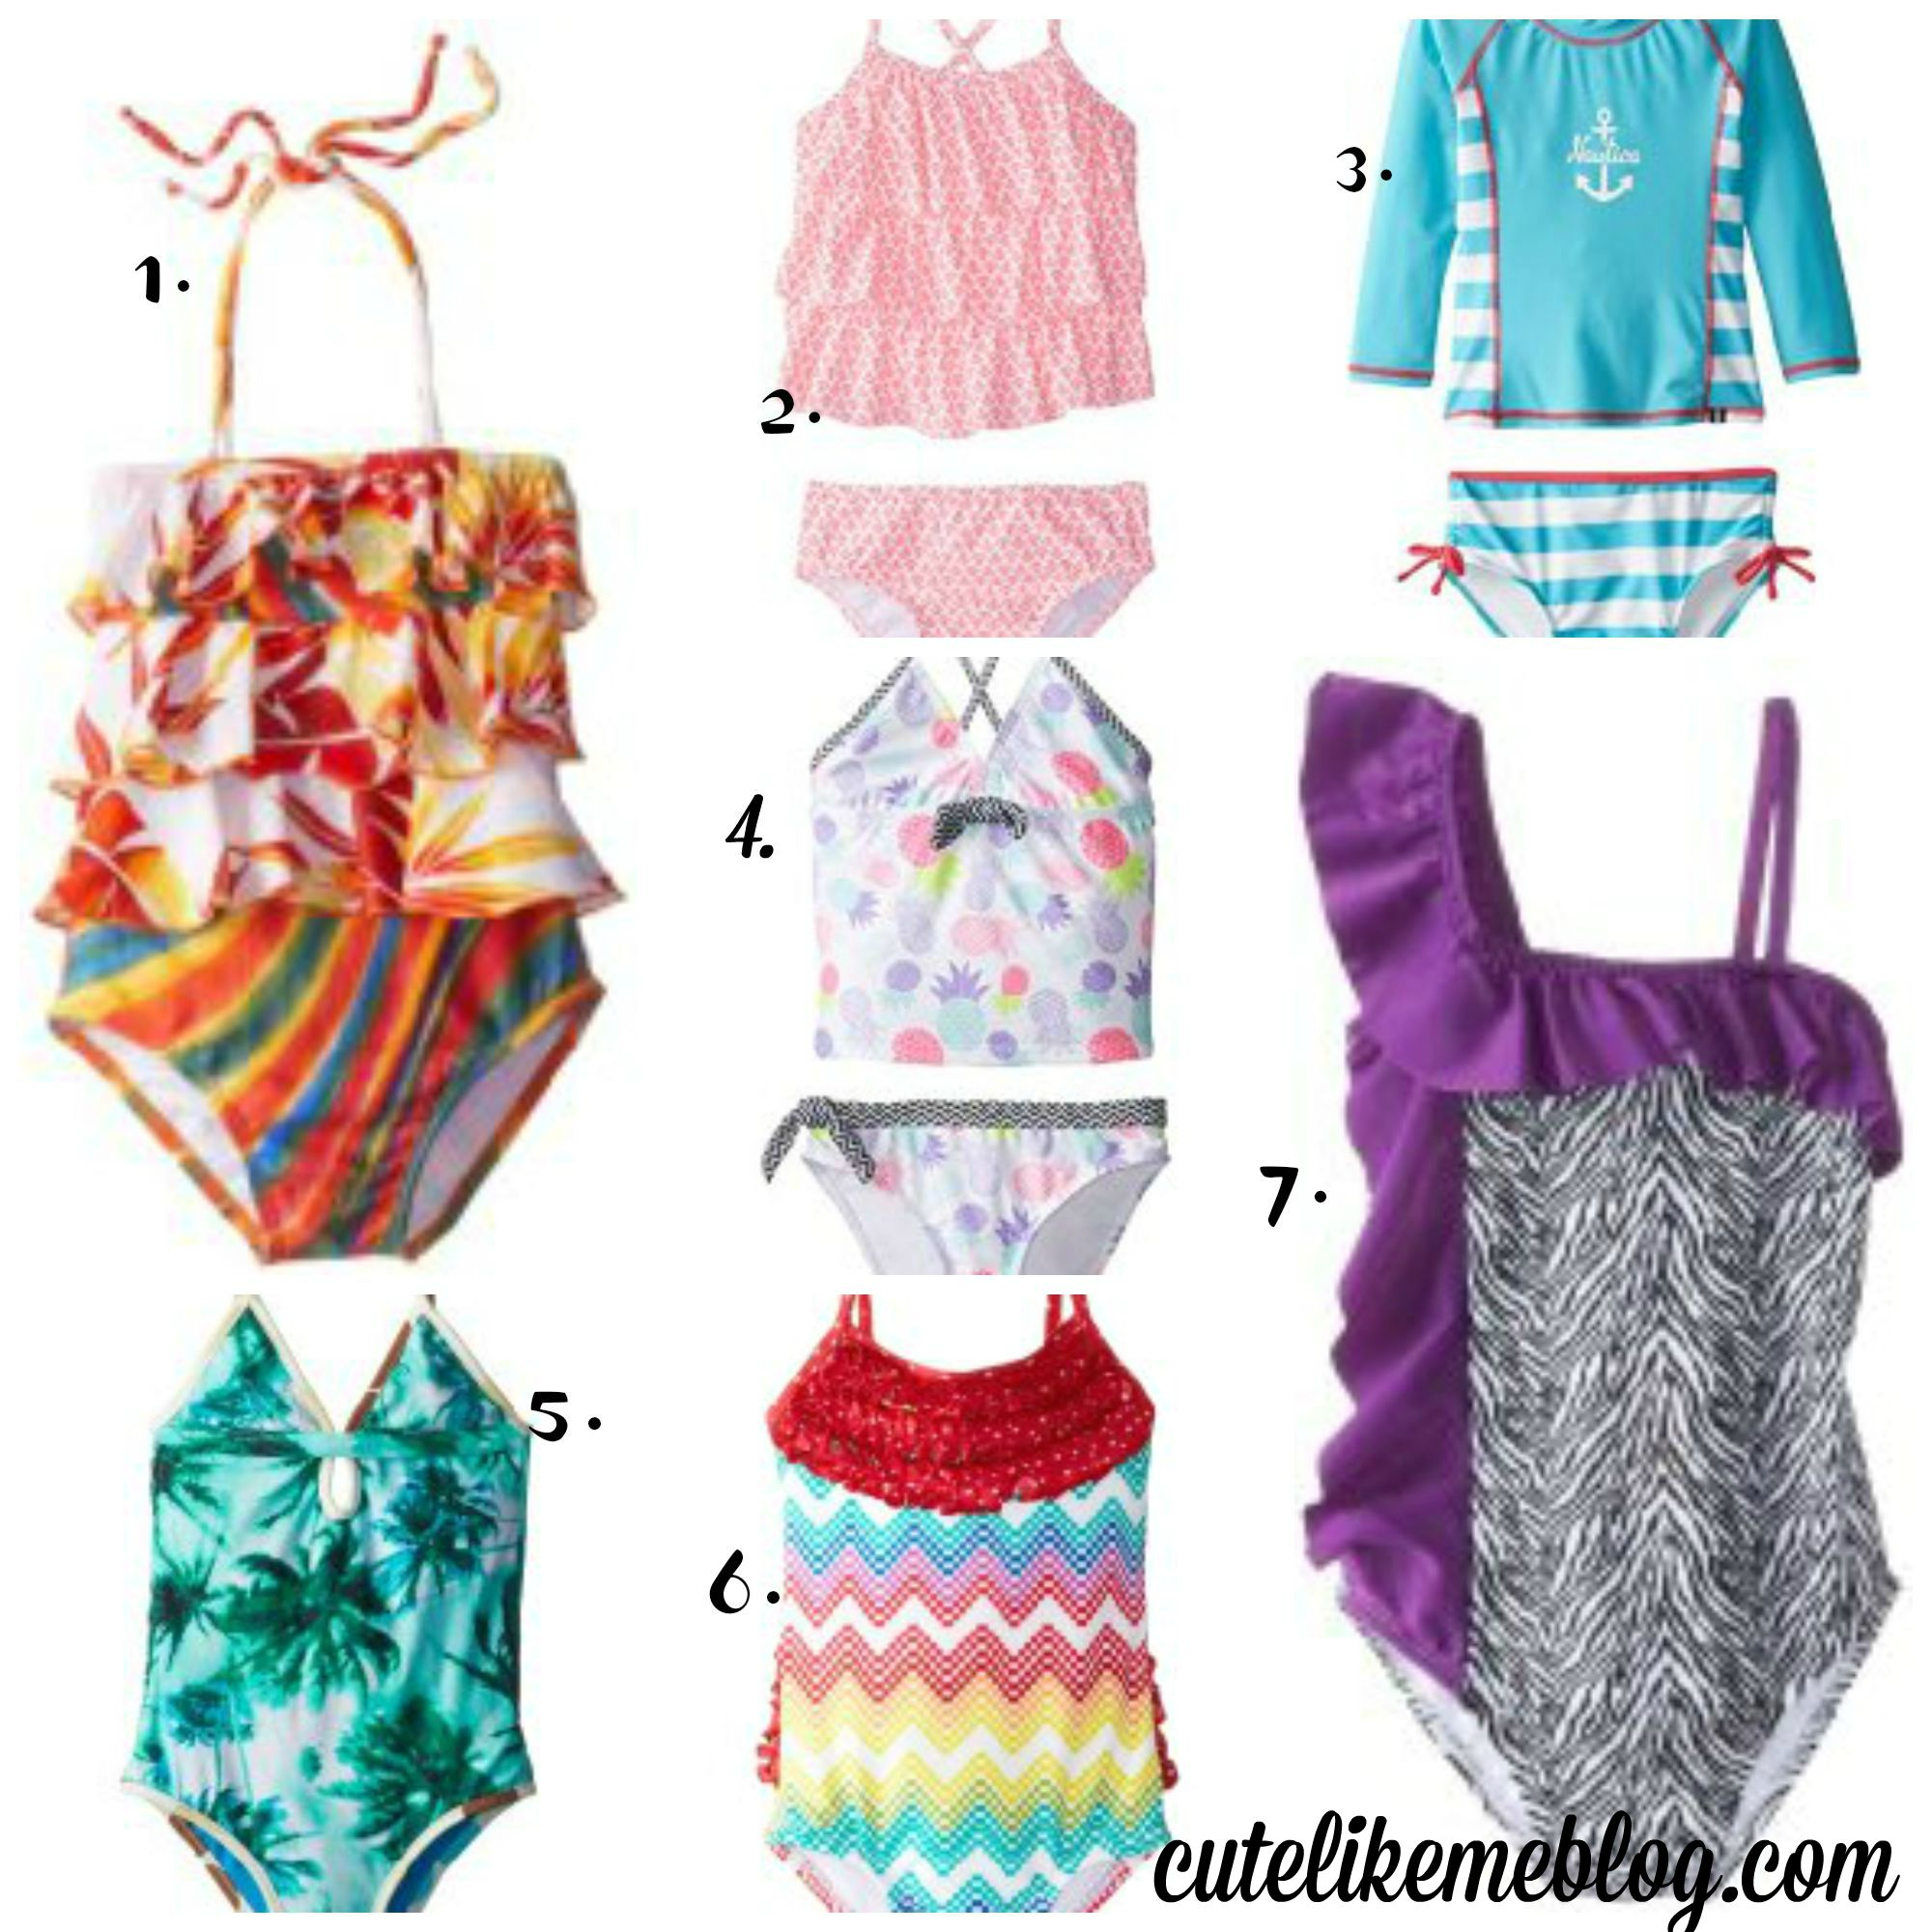 baby buns big chill billabong carter gossip girl hello kitty jantzen lemons and limes maaji nautica pink platinum roxy tiaobu vaenait swimwear these are the days amazon